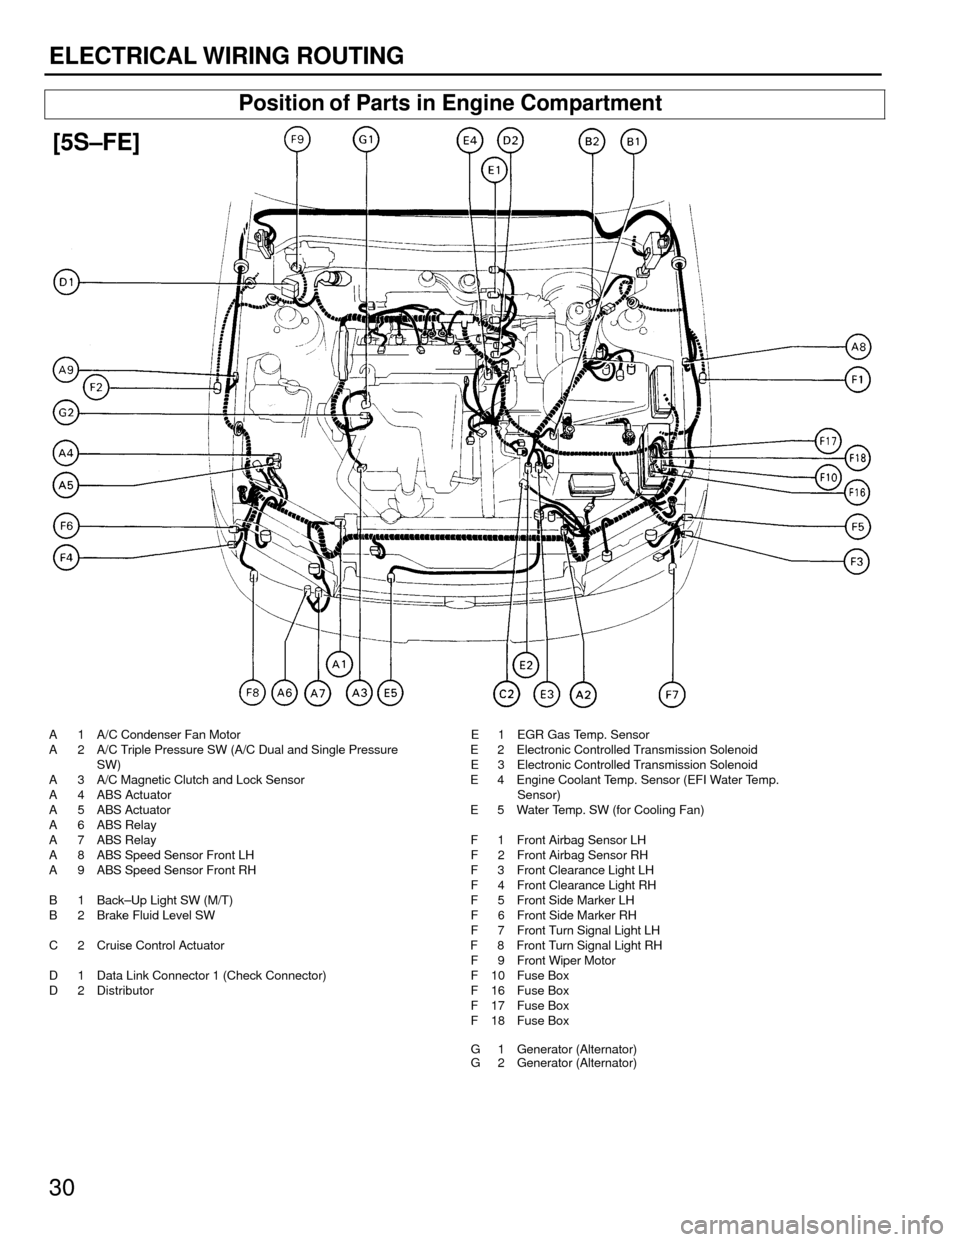 airbag TOYOTA CAMRY 1994 XV10 / 4.G Wiring Diagrams